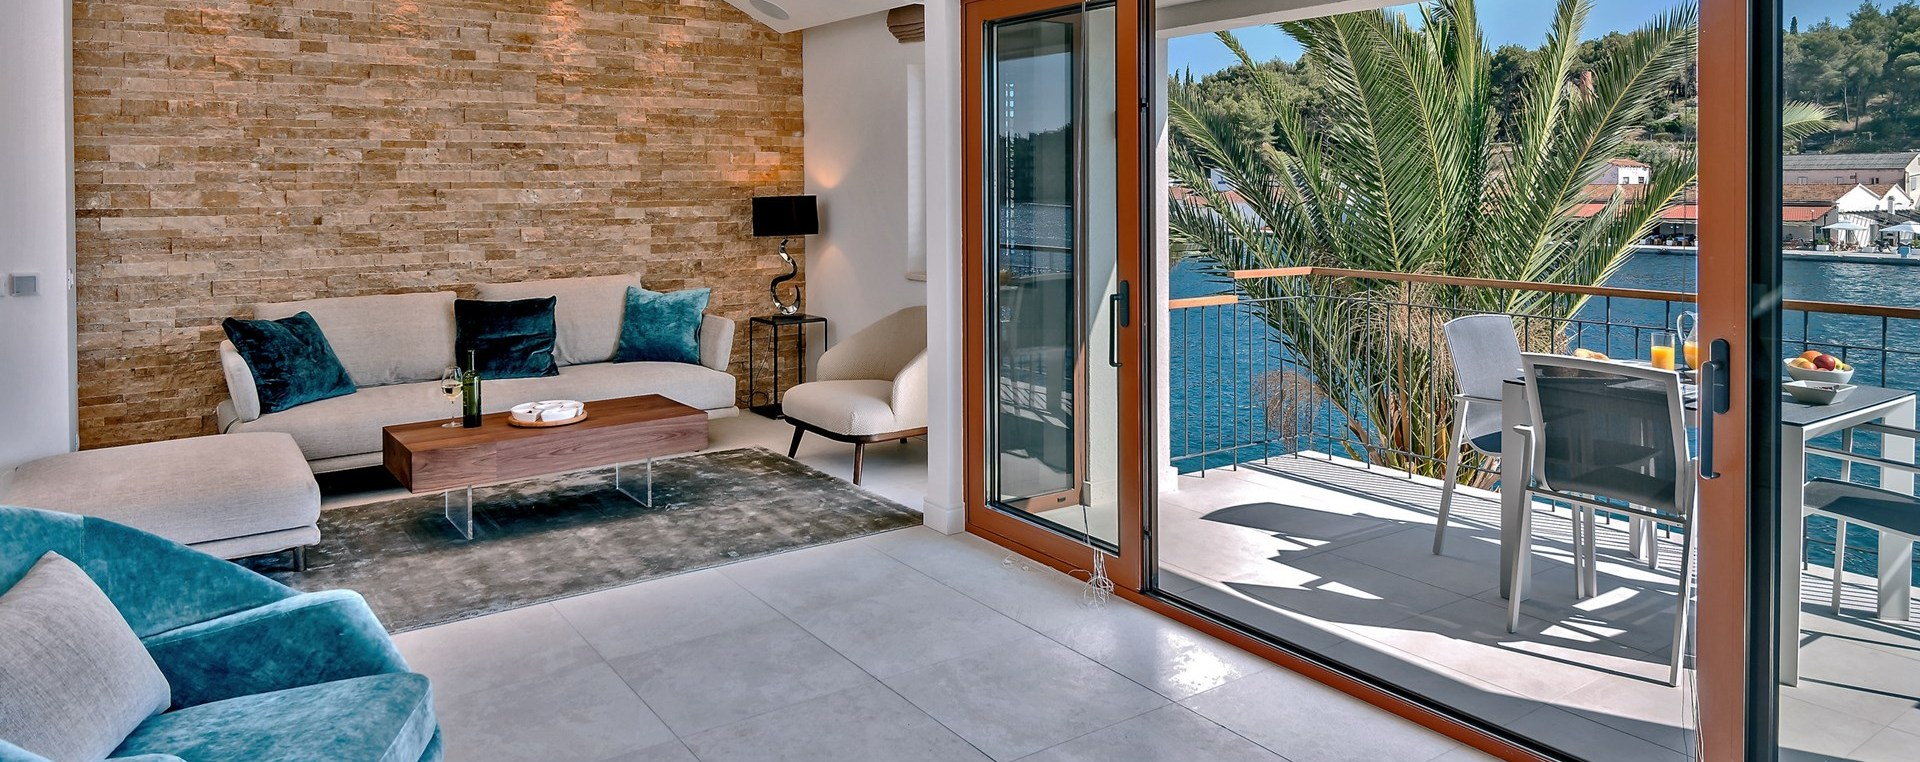 villa-tourmaline-seaview-terrace